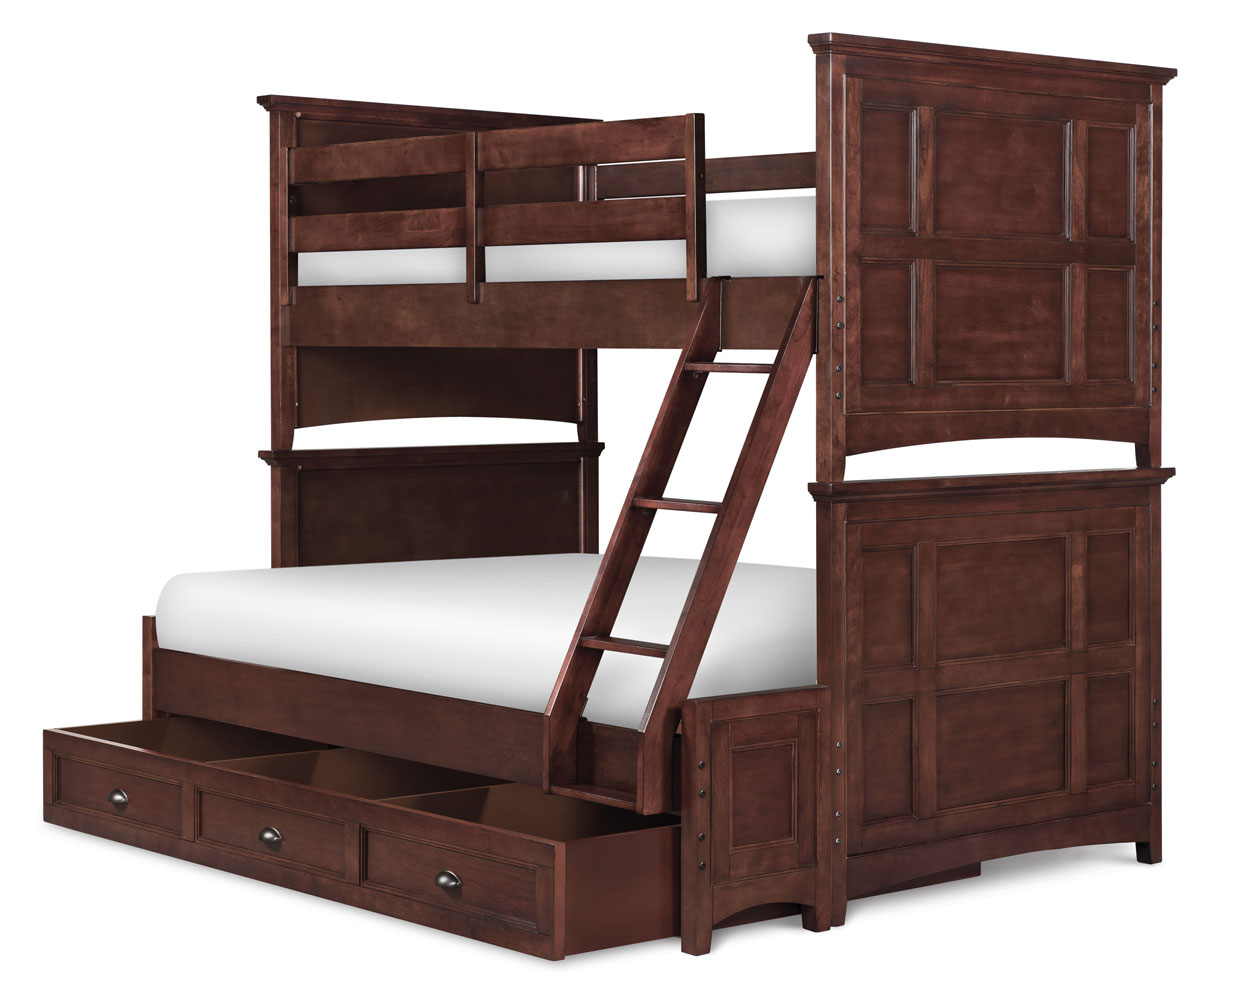 Riley Bunk Bed - Twin Over Full (Cherry) : Decor South